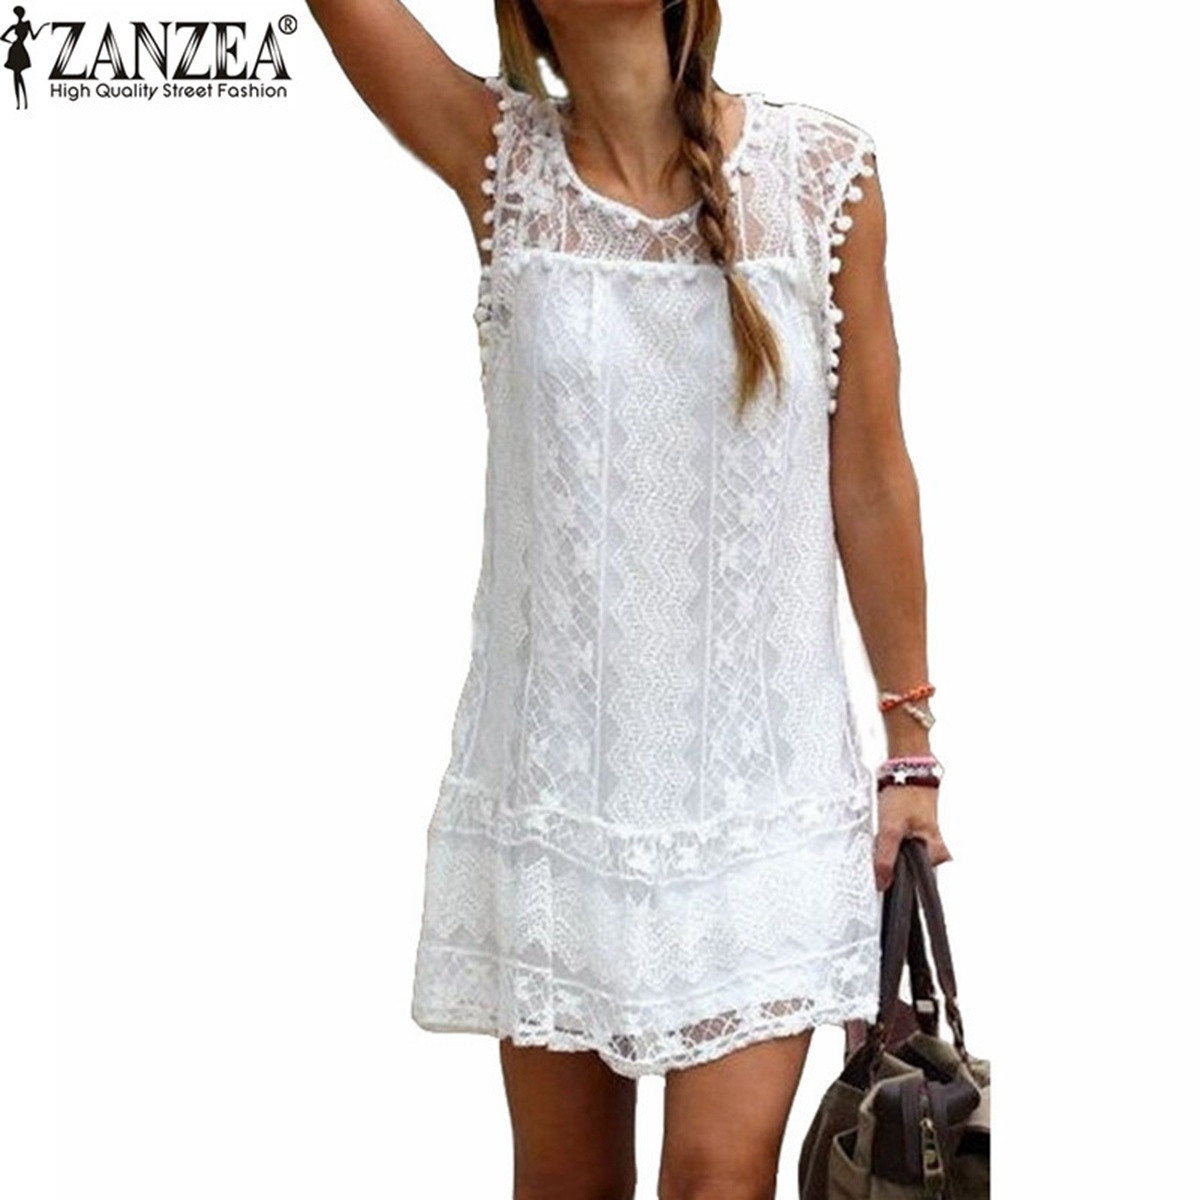 ZANZEA Vestidos 2017 Summer Elegant Women Casual Solid Short Sleeve Slim Lace Mini Dress Tops Ladies Sexy White Dress Plus Size(China)